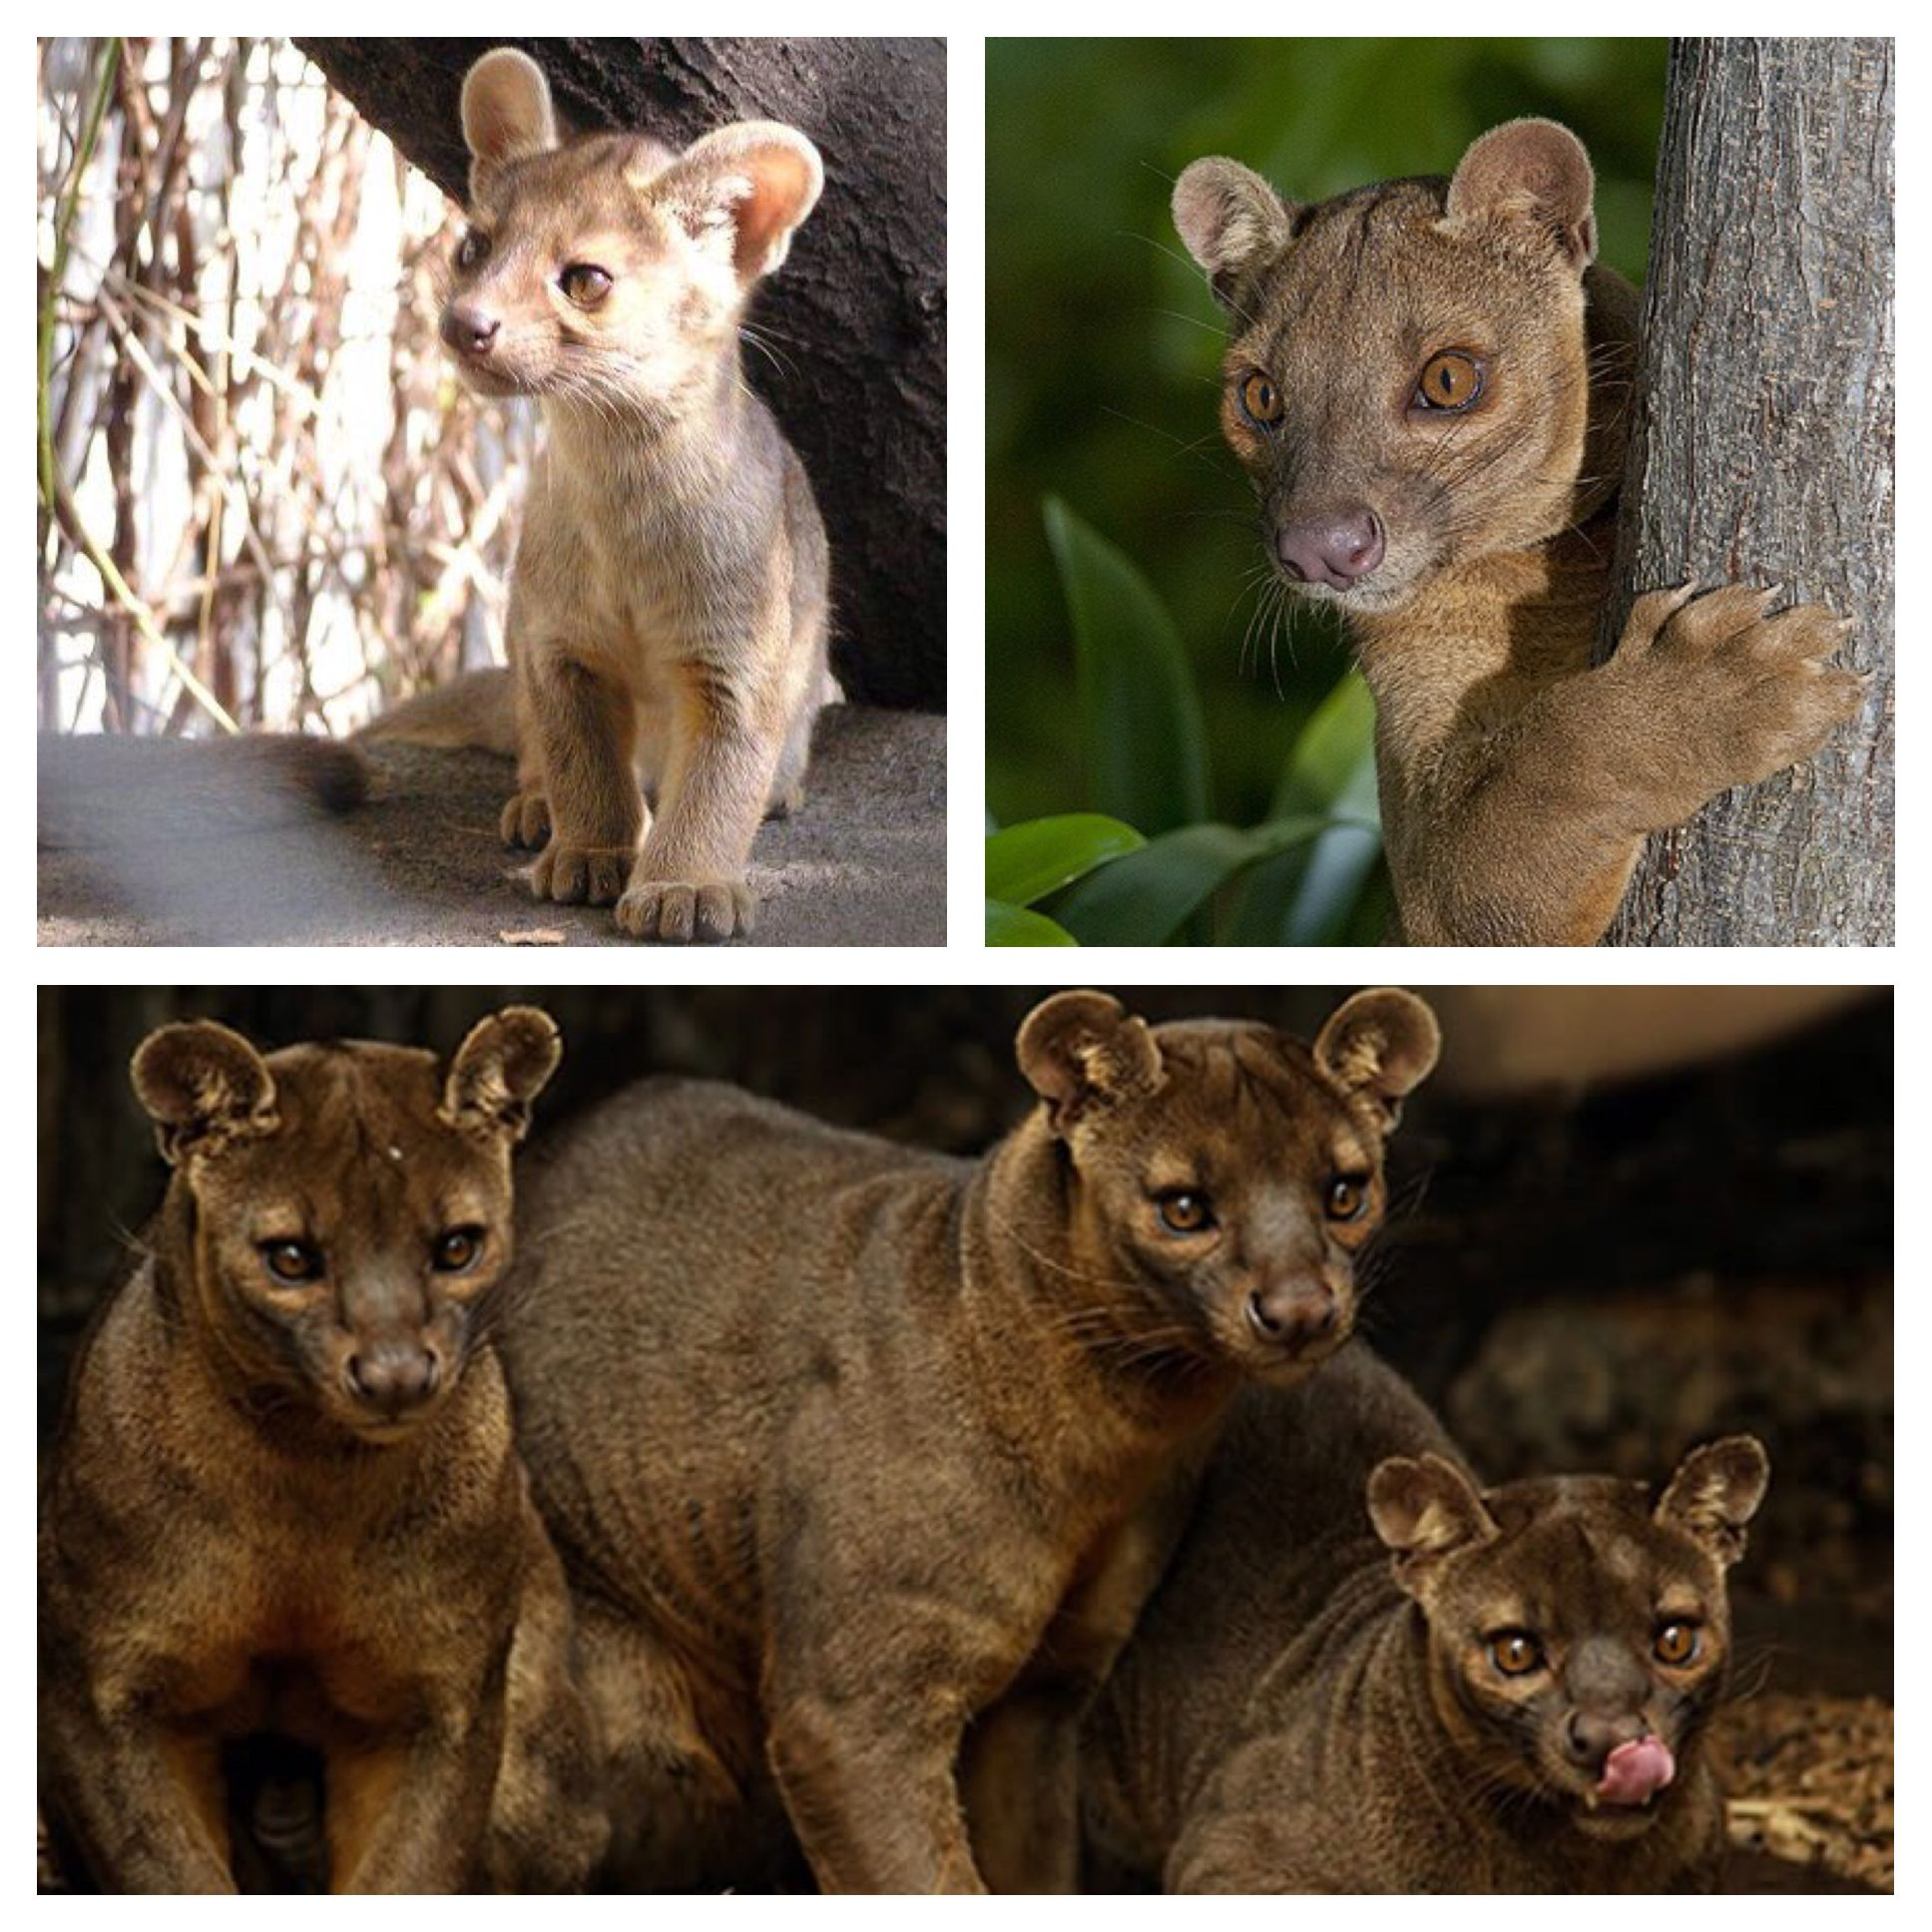 The fossa is a catlike, carnivorous mammal endemic to